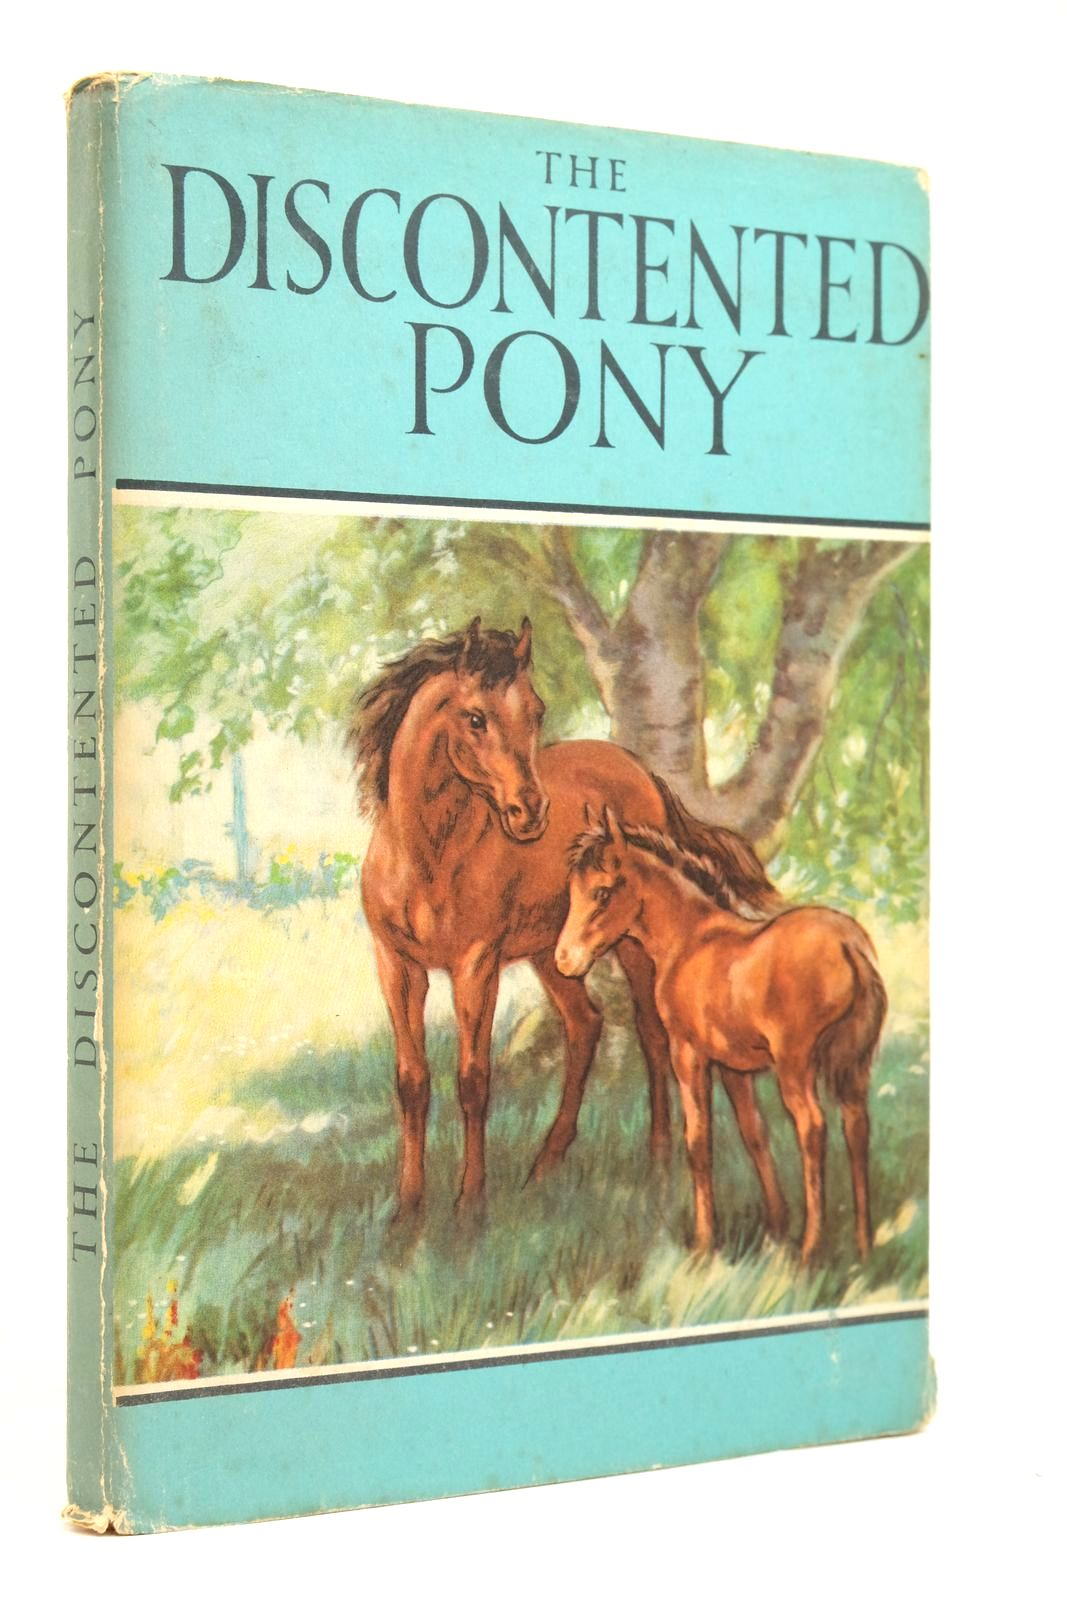 Photo of THE DISCONTENTED PONY written by Barr, Noel illustrated by Hickling, P.B. published by Wills & Hepworth Ltd. (STOCK CODE: 2135160)  for sale by Stella & Rose's Books